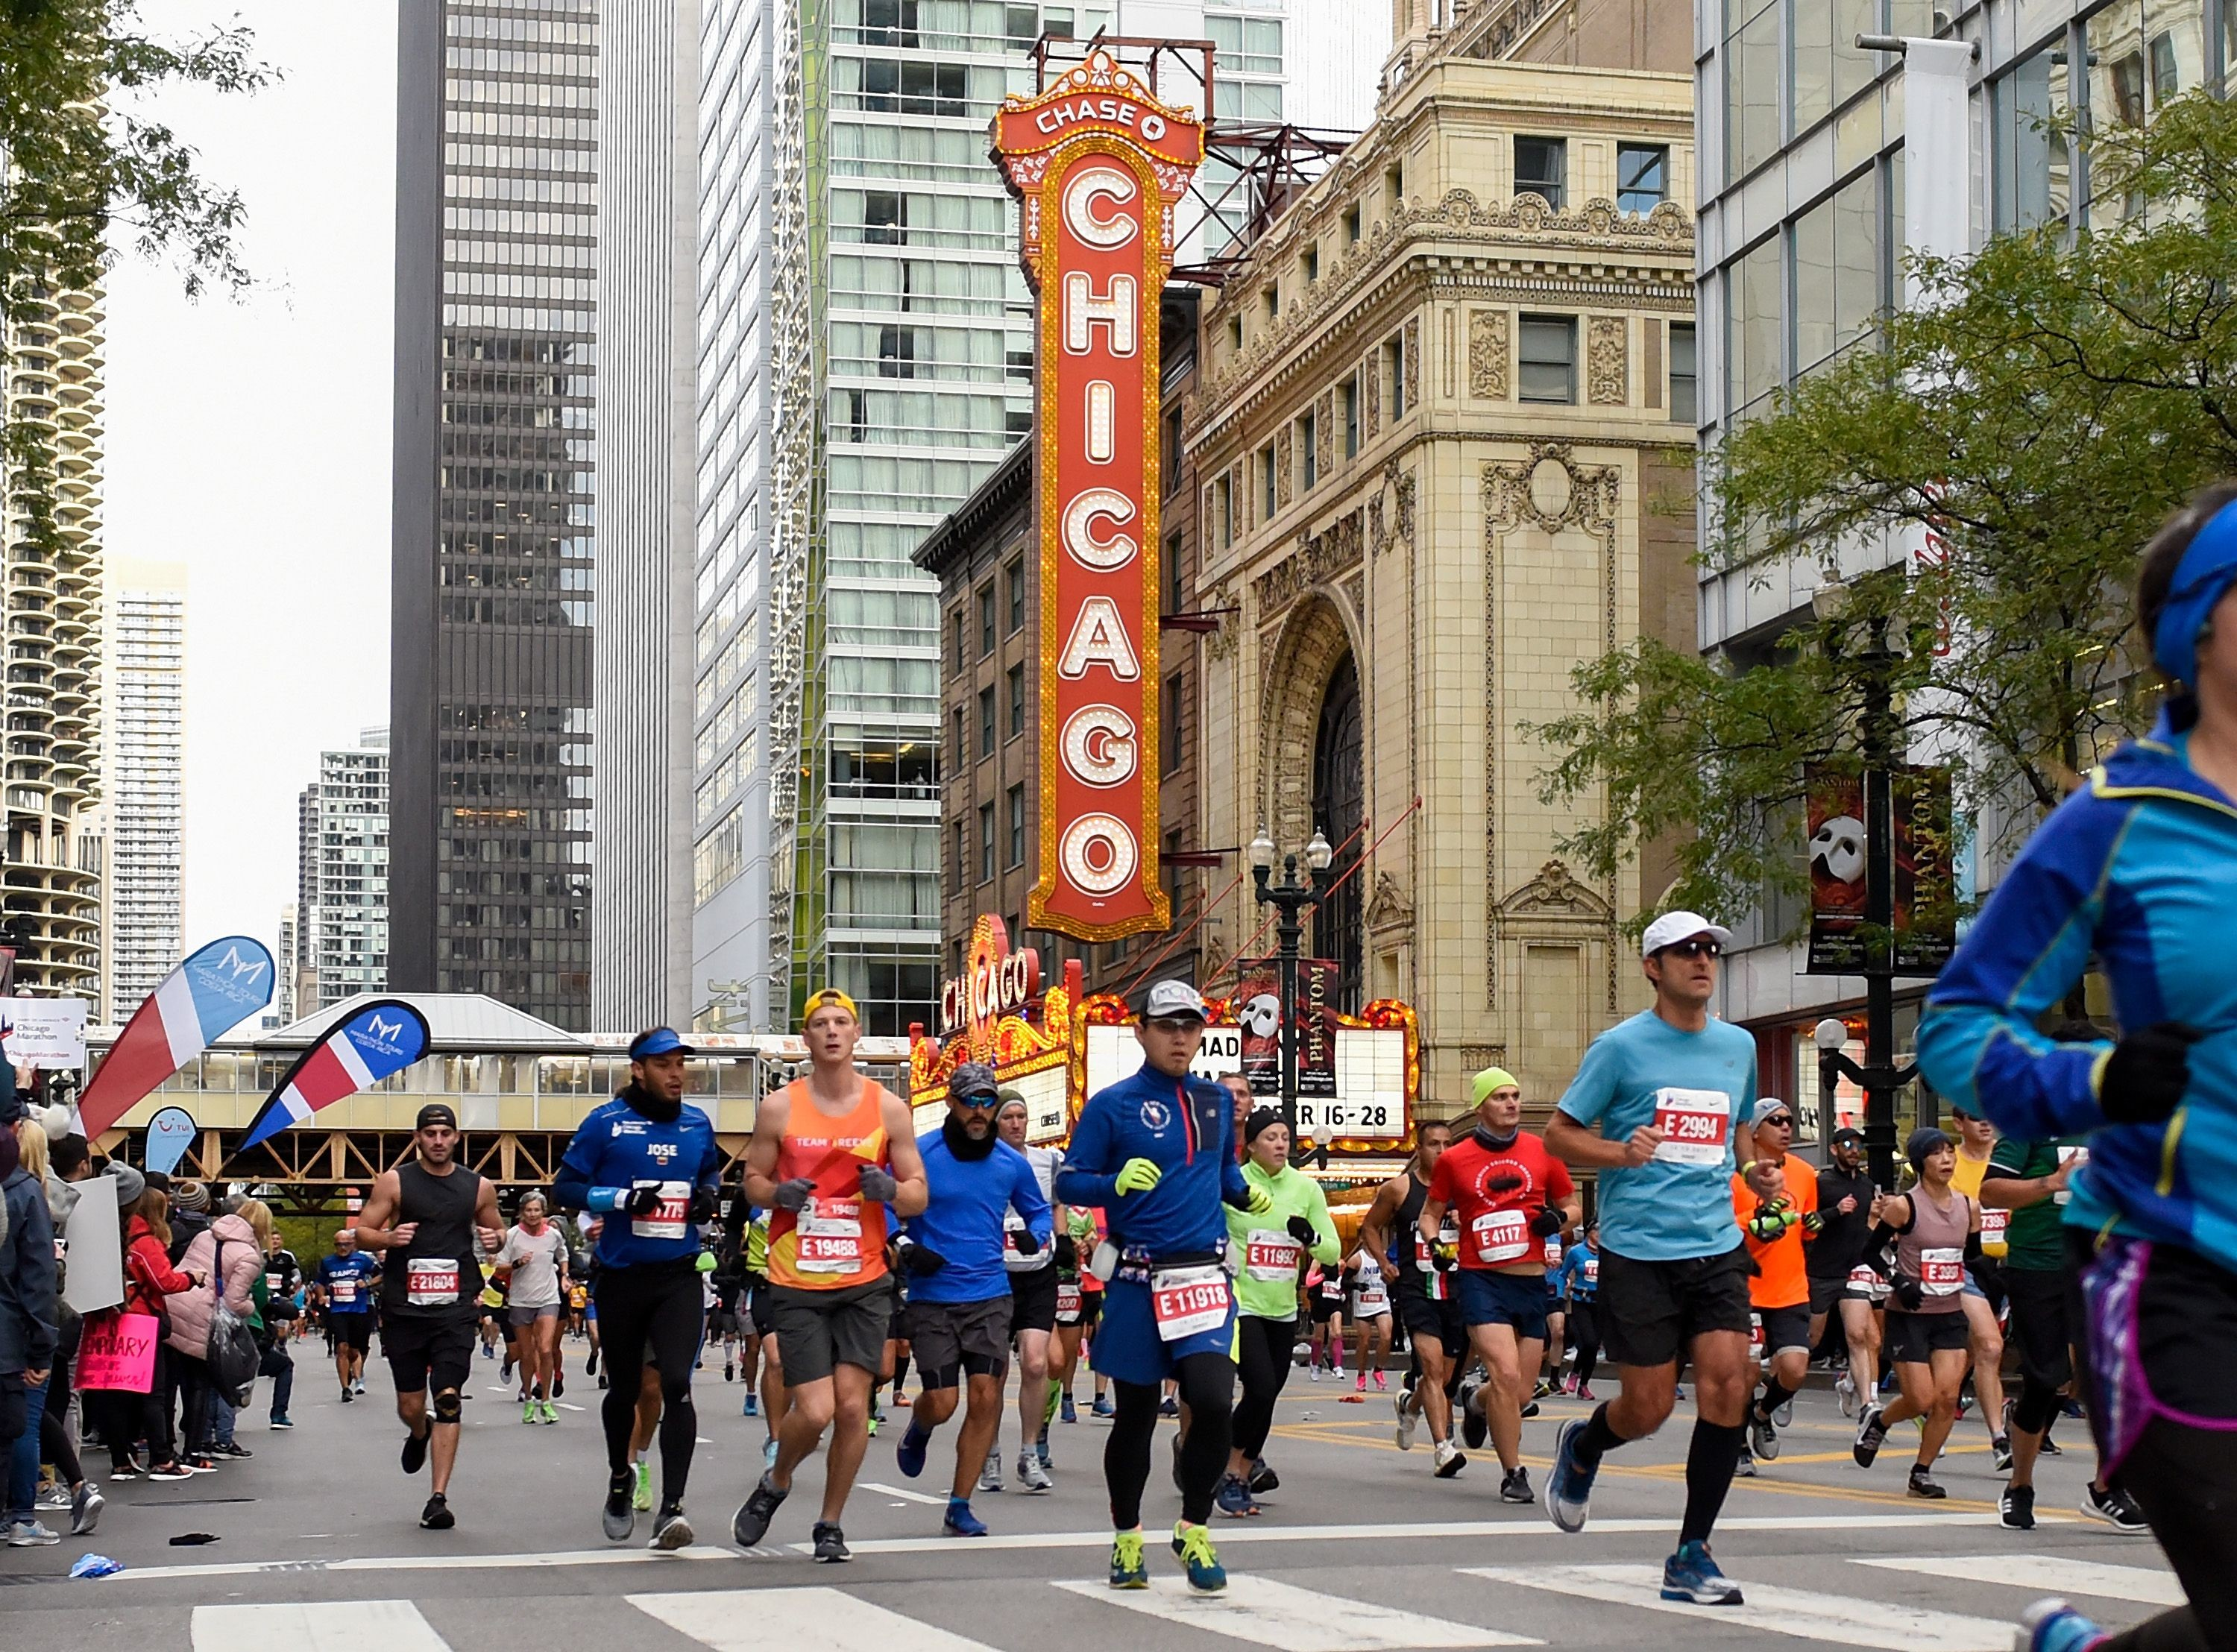 The 2020 Chicago Marathon has been canceled